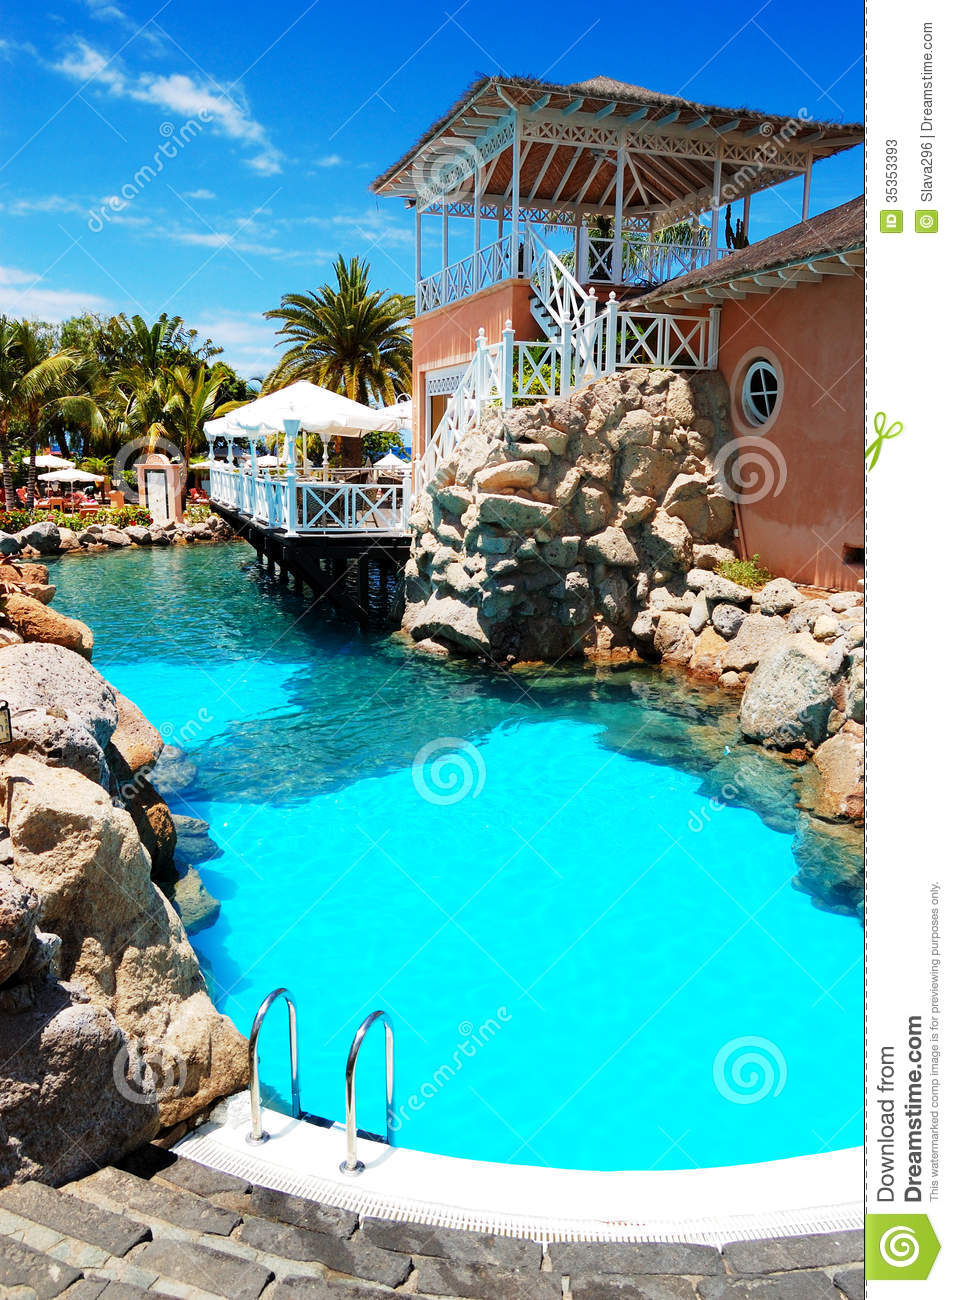 Swimming Pool Near Open Air Restaurant At Luxury Hotel Stock Photos Image 35353393